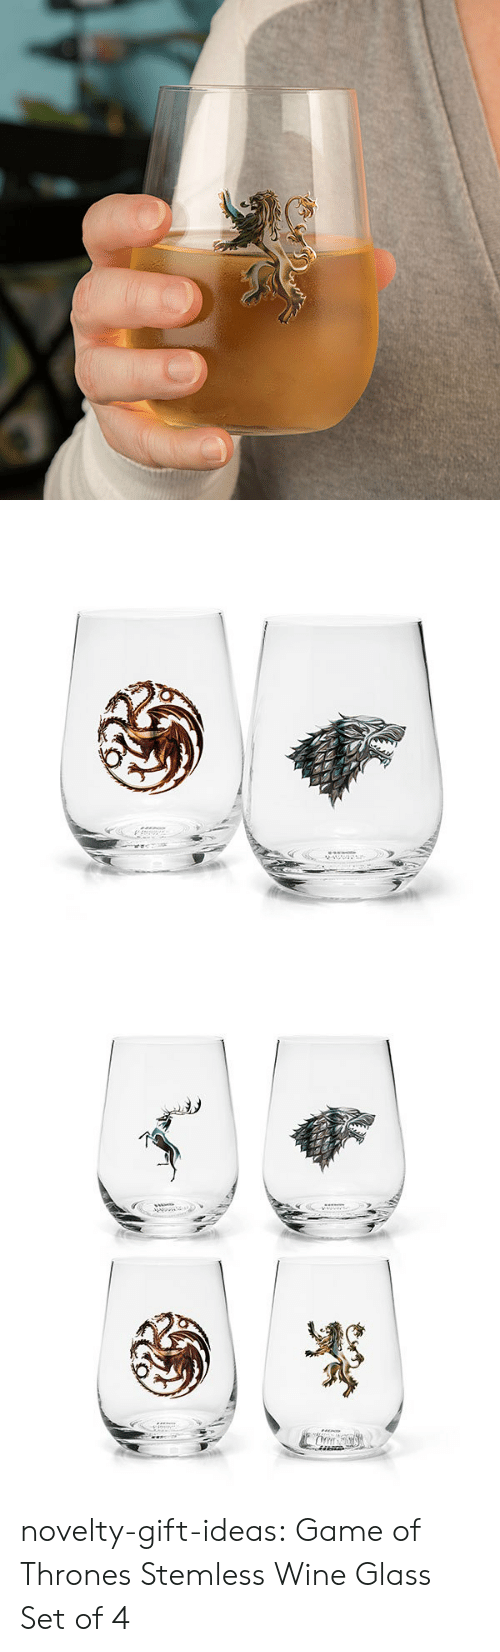 Game of Thrones, Tumblr, and Wine: novelty-gift-ideas:  Game of Thrones Stemless Wine Glass Set of 4